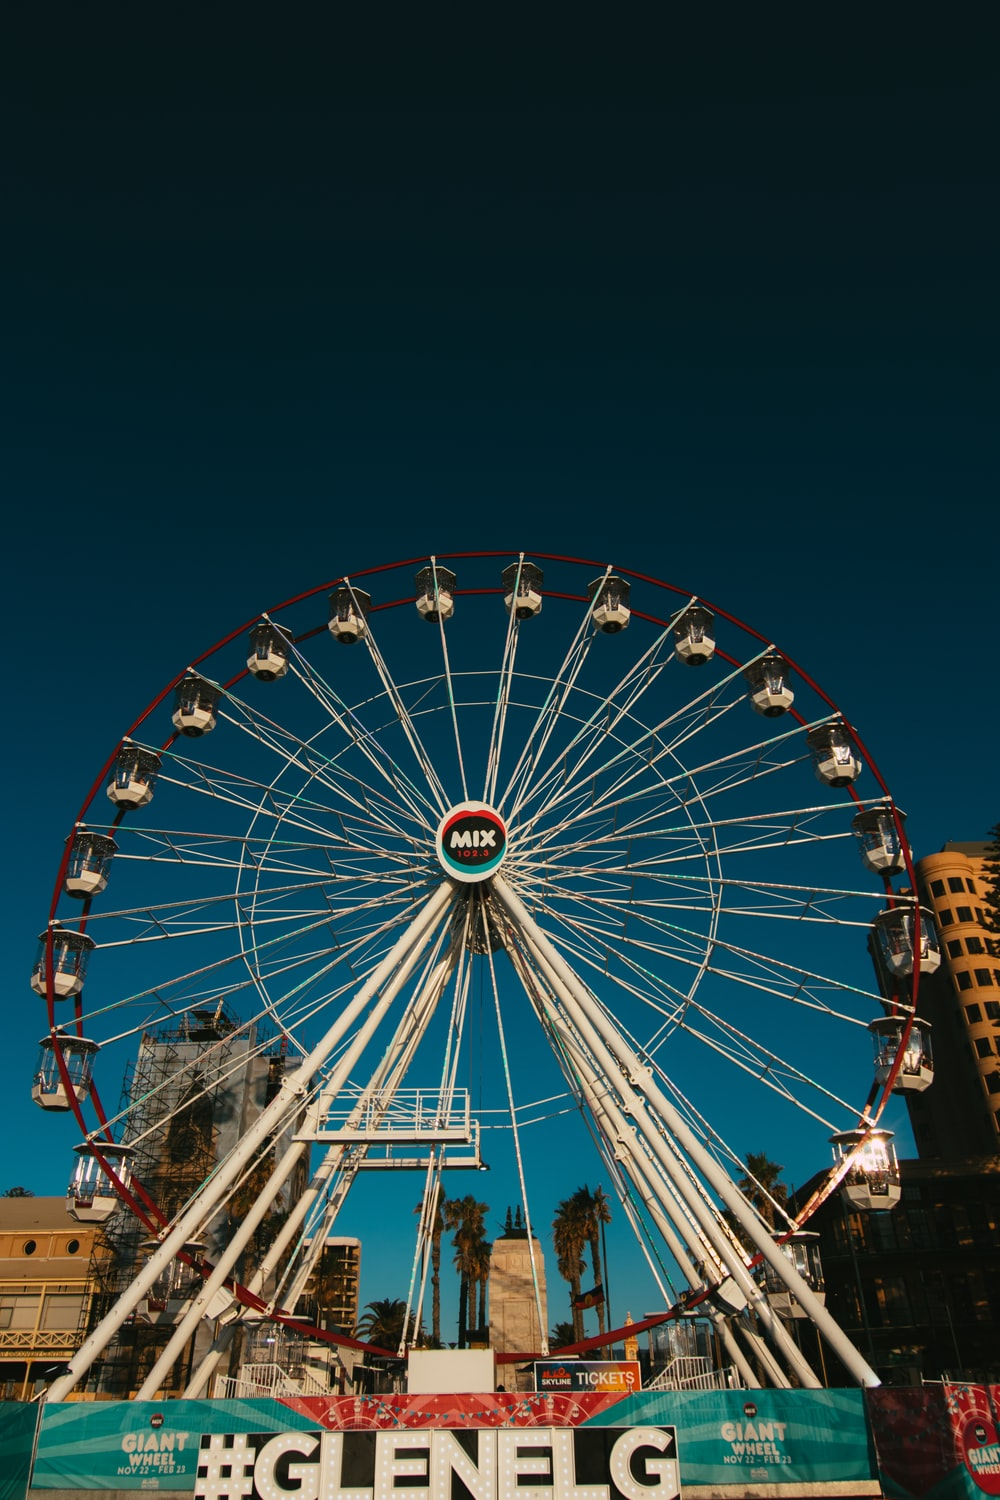 people riding on ferris wheel during night time